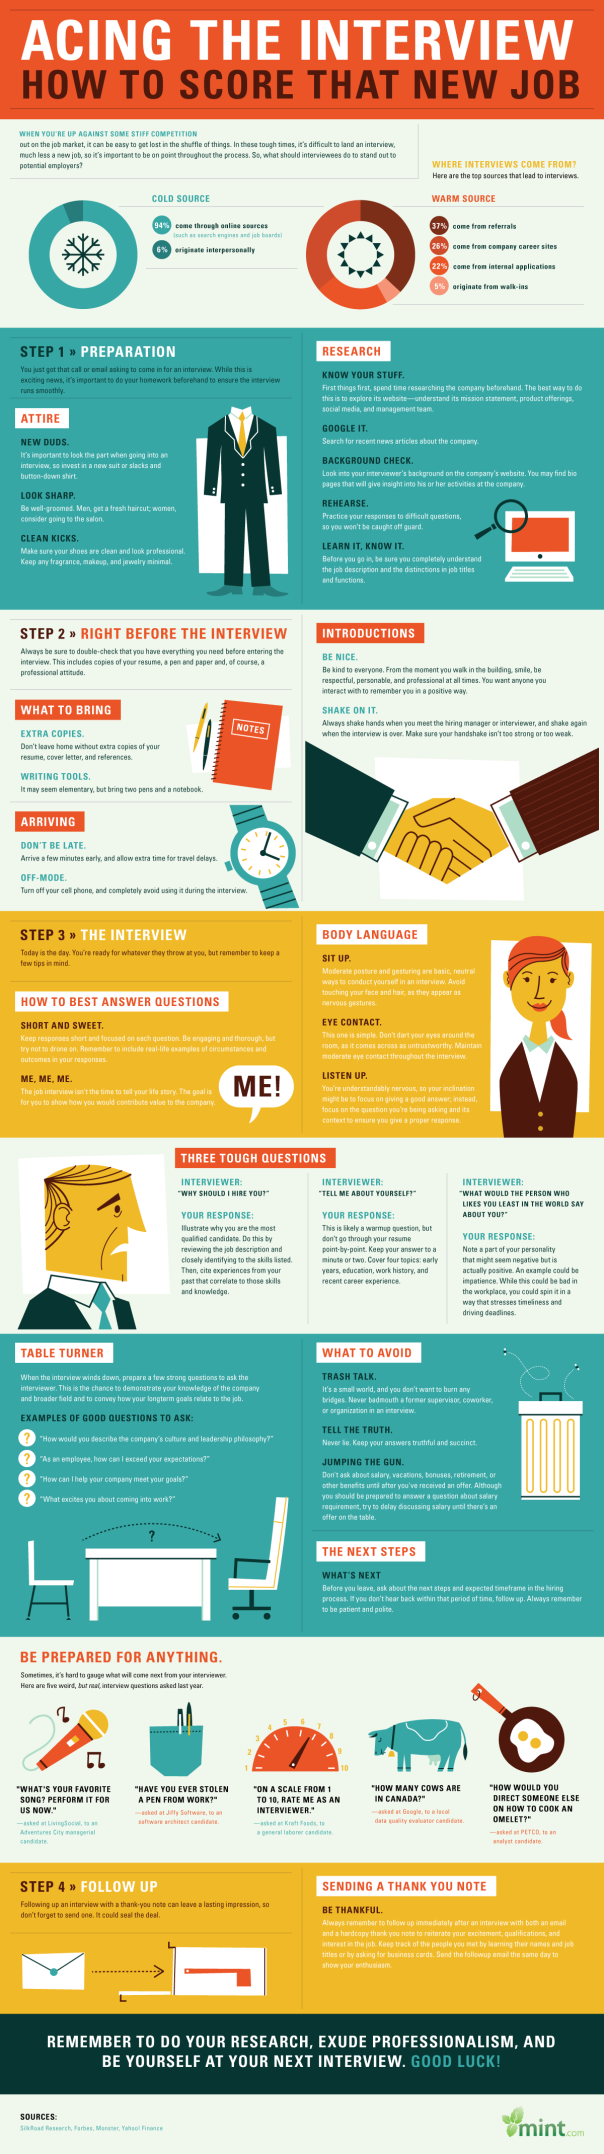 How-to-Ace-a-Job-Interview